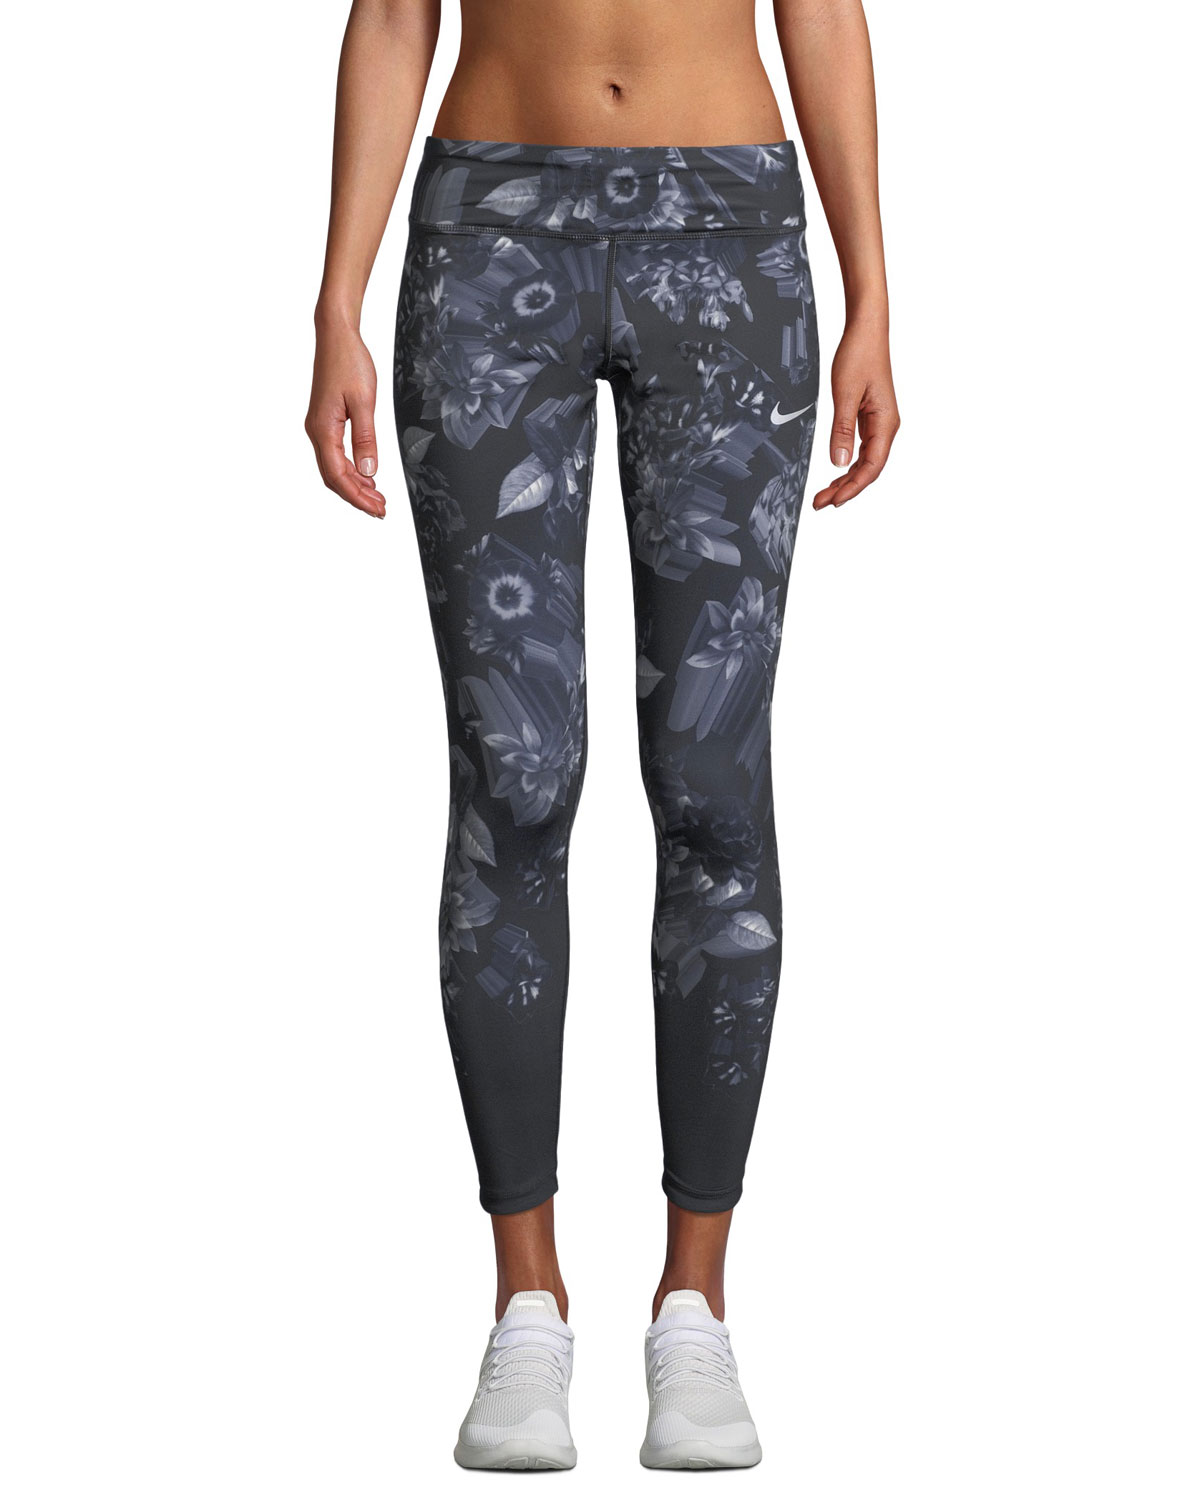 88f49af17765 Nike Epic Lux Printed Running Tights